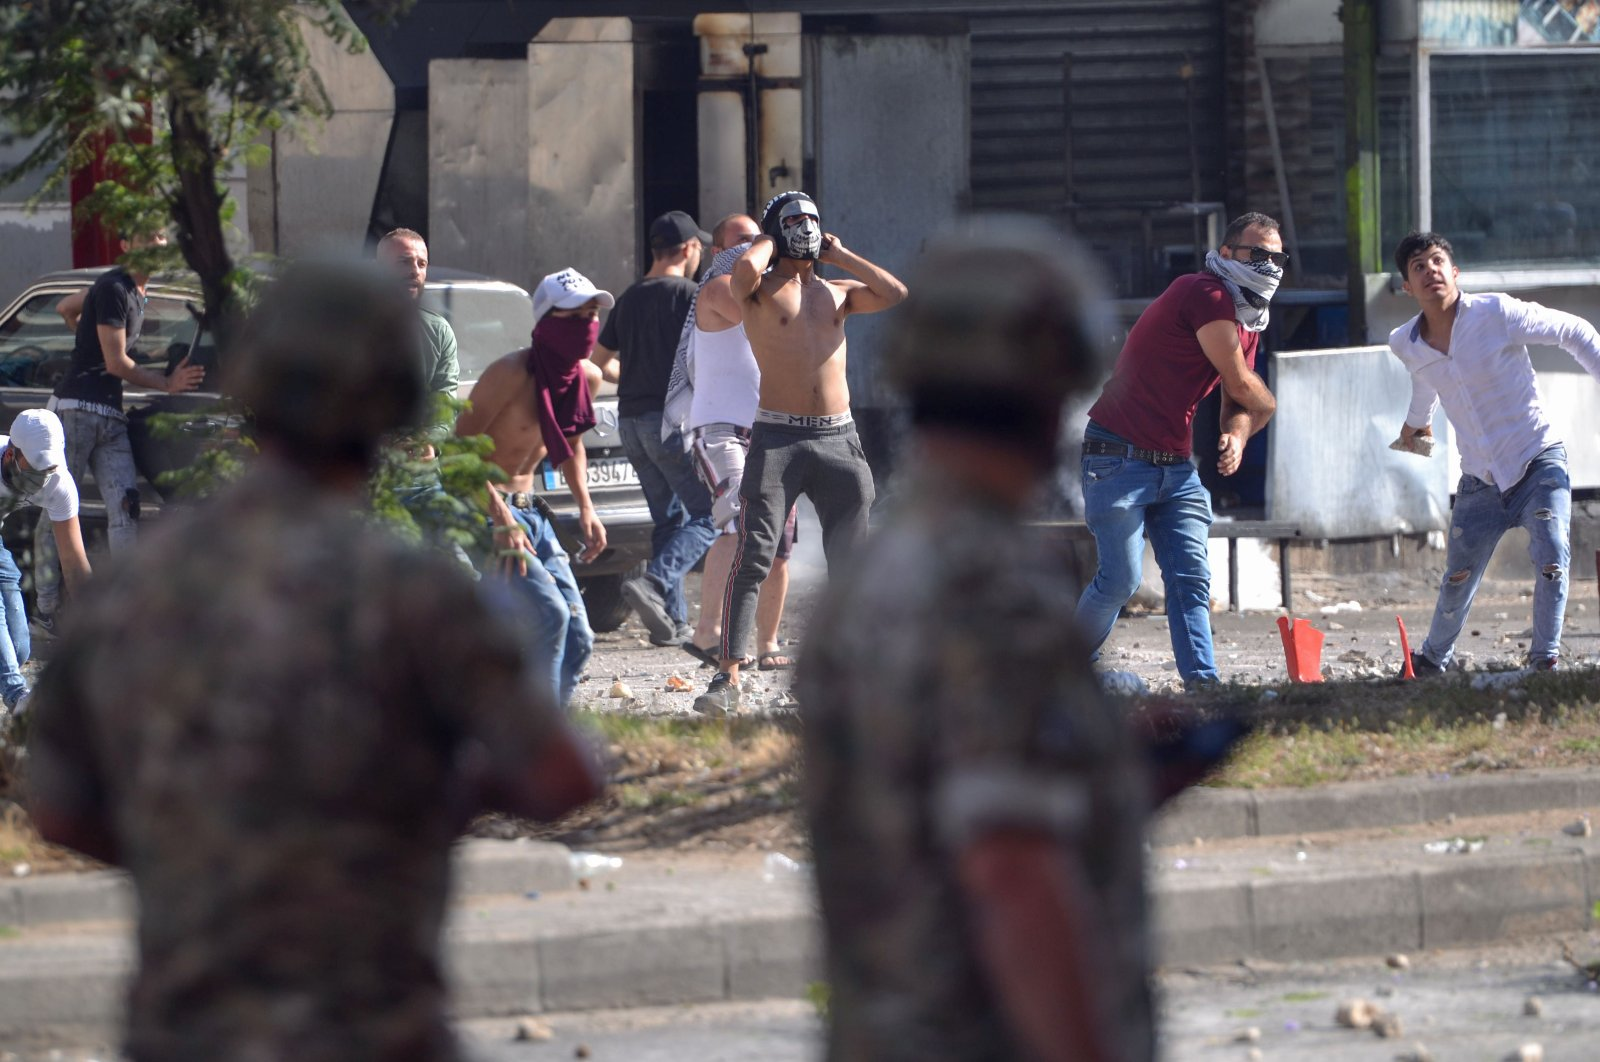 Lebanese anti-government protesters clash with soldiers in the Bab al-Tabbaneh neighbourhood in the northern port city of Tripoli, on June 13, 2020, on the third consecutive day of angry demonstrations across the country due to a deepening economic crisis. (AFP Photo)